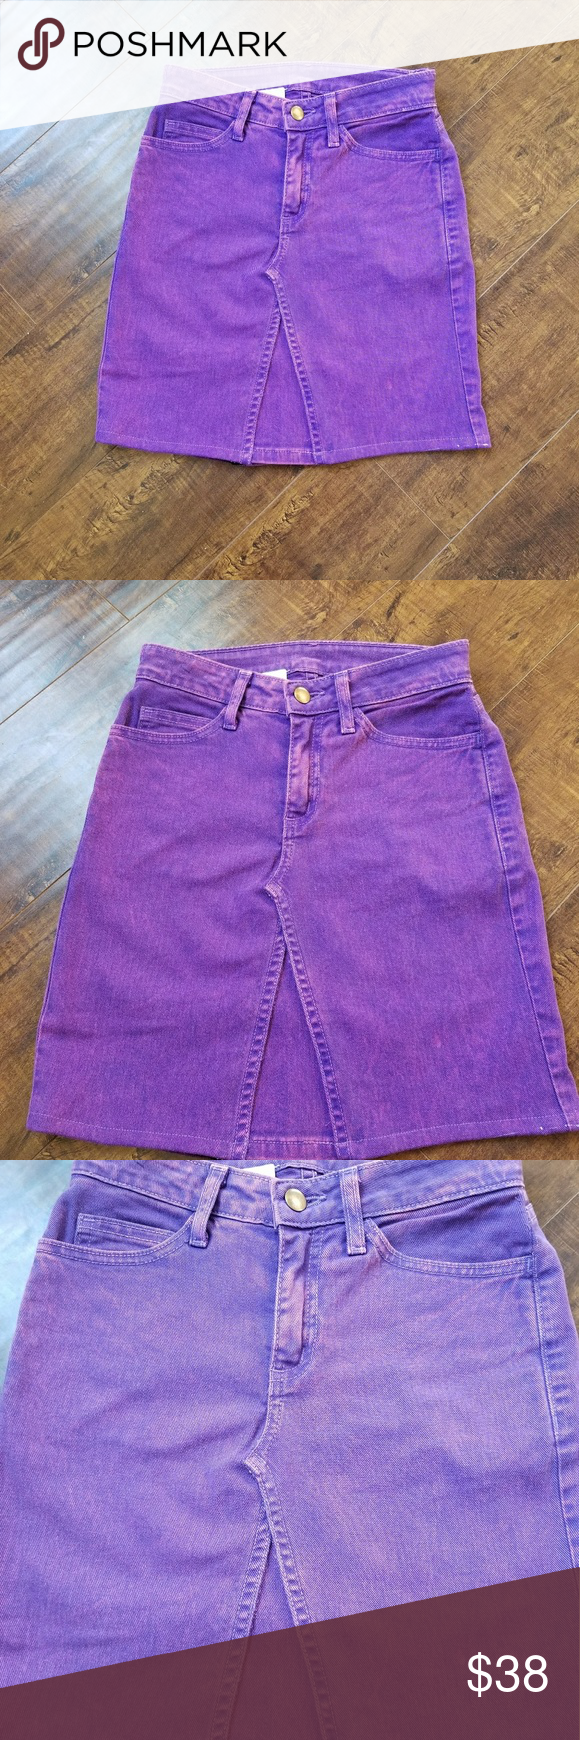 2fdfeb56c6 Vintage Purple Denim skirt •Vintage purple denim skirt •Made from upcycled  American Apparel denim jeans •Sizes 25 waist/ XS •Fitted and stretchy denim  ...